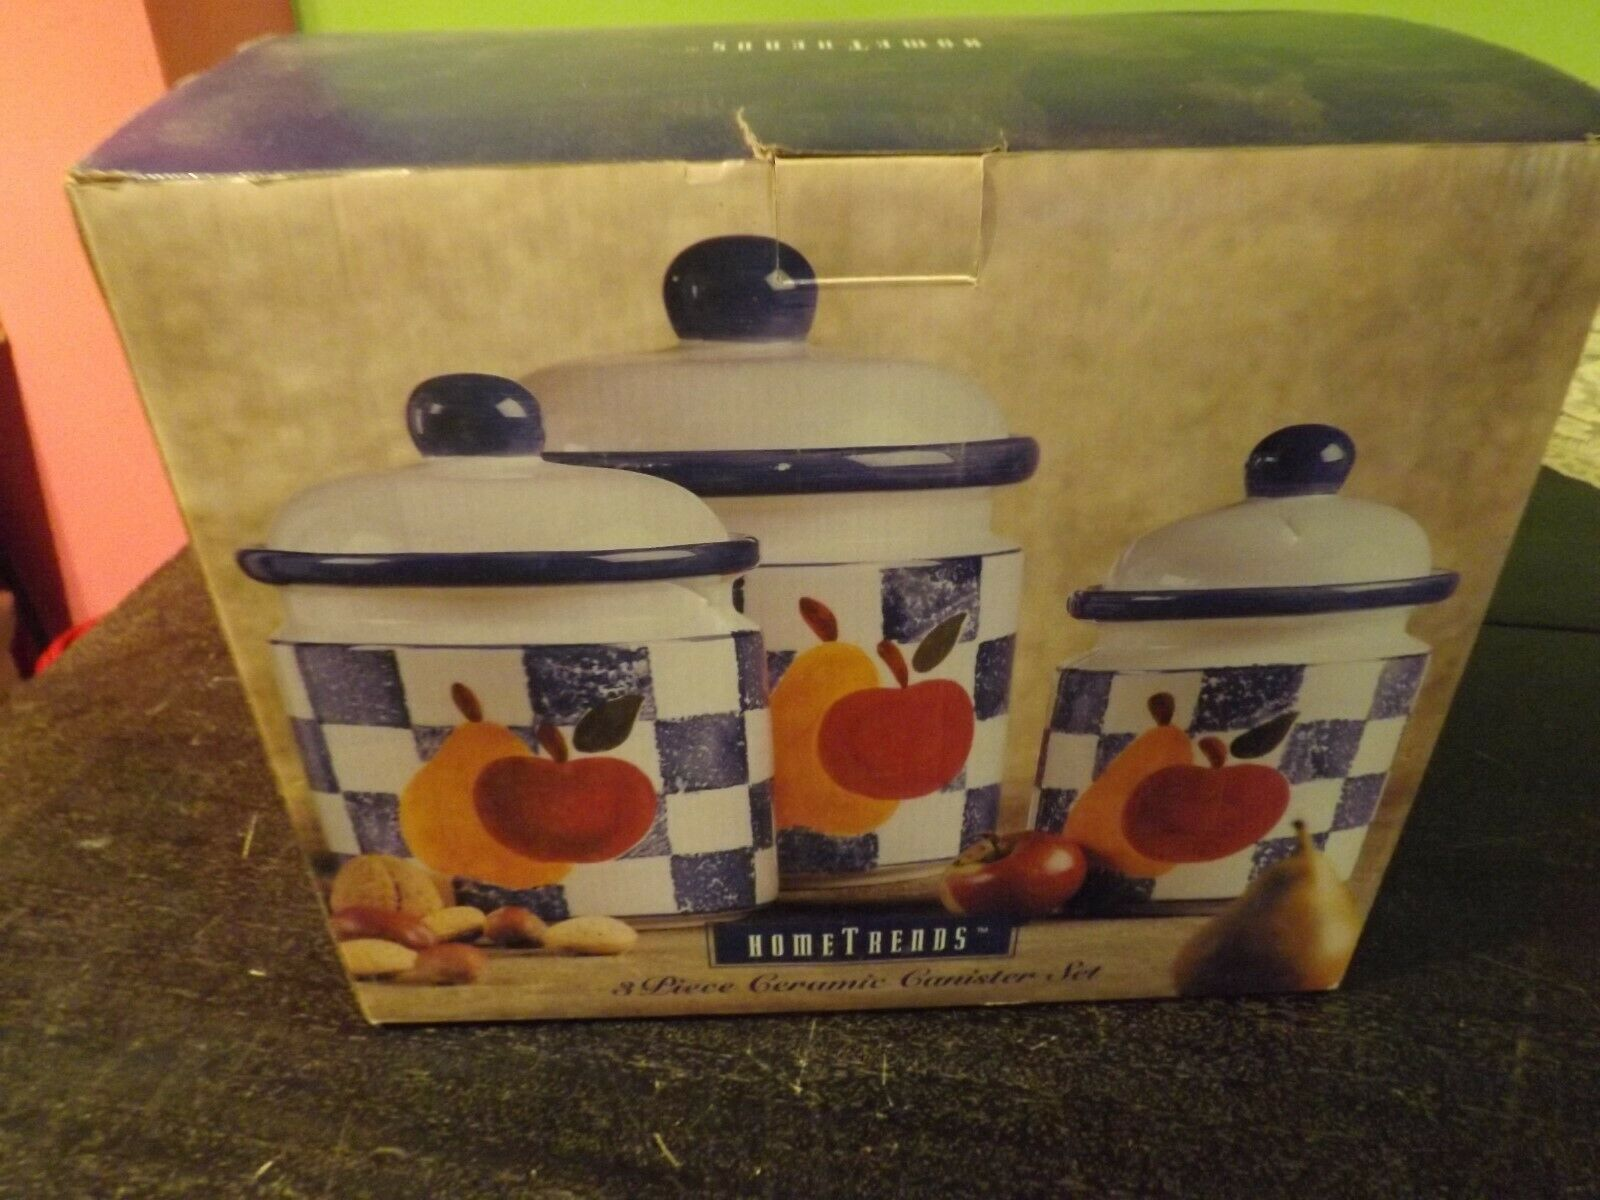 Home Trends Blue Checkers Kitchen Canister 9 pc set Fruit Apple Pear